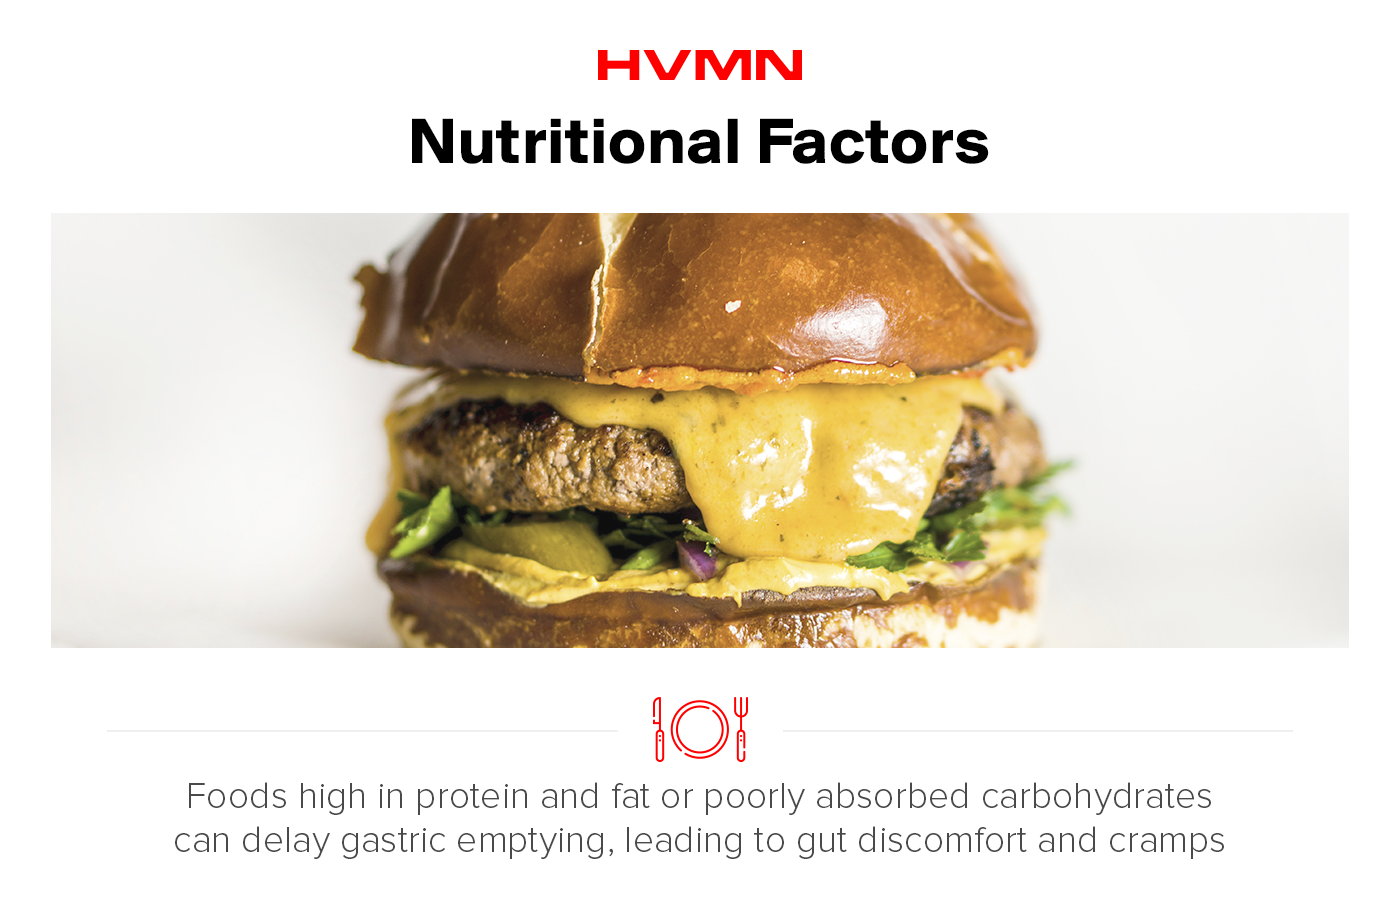 """This image is of a large cheeseburger. The title is """"nutritional factors"""". Under the image it says that foods high in protein and fat or poorly absorbed carbohydrates can delay gastric emptying, leading to gut discomfort and cramps."""